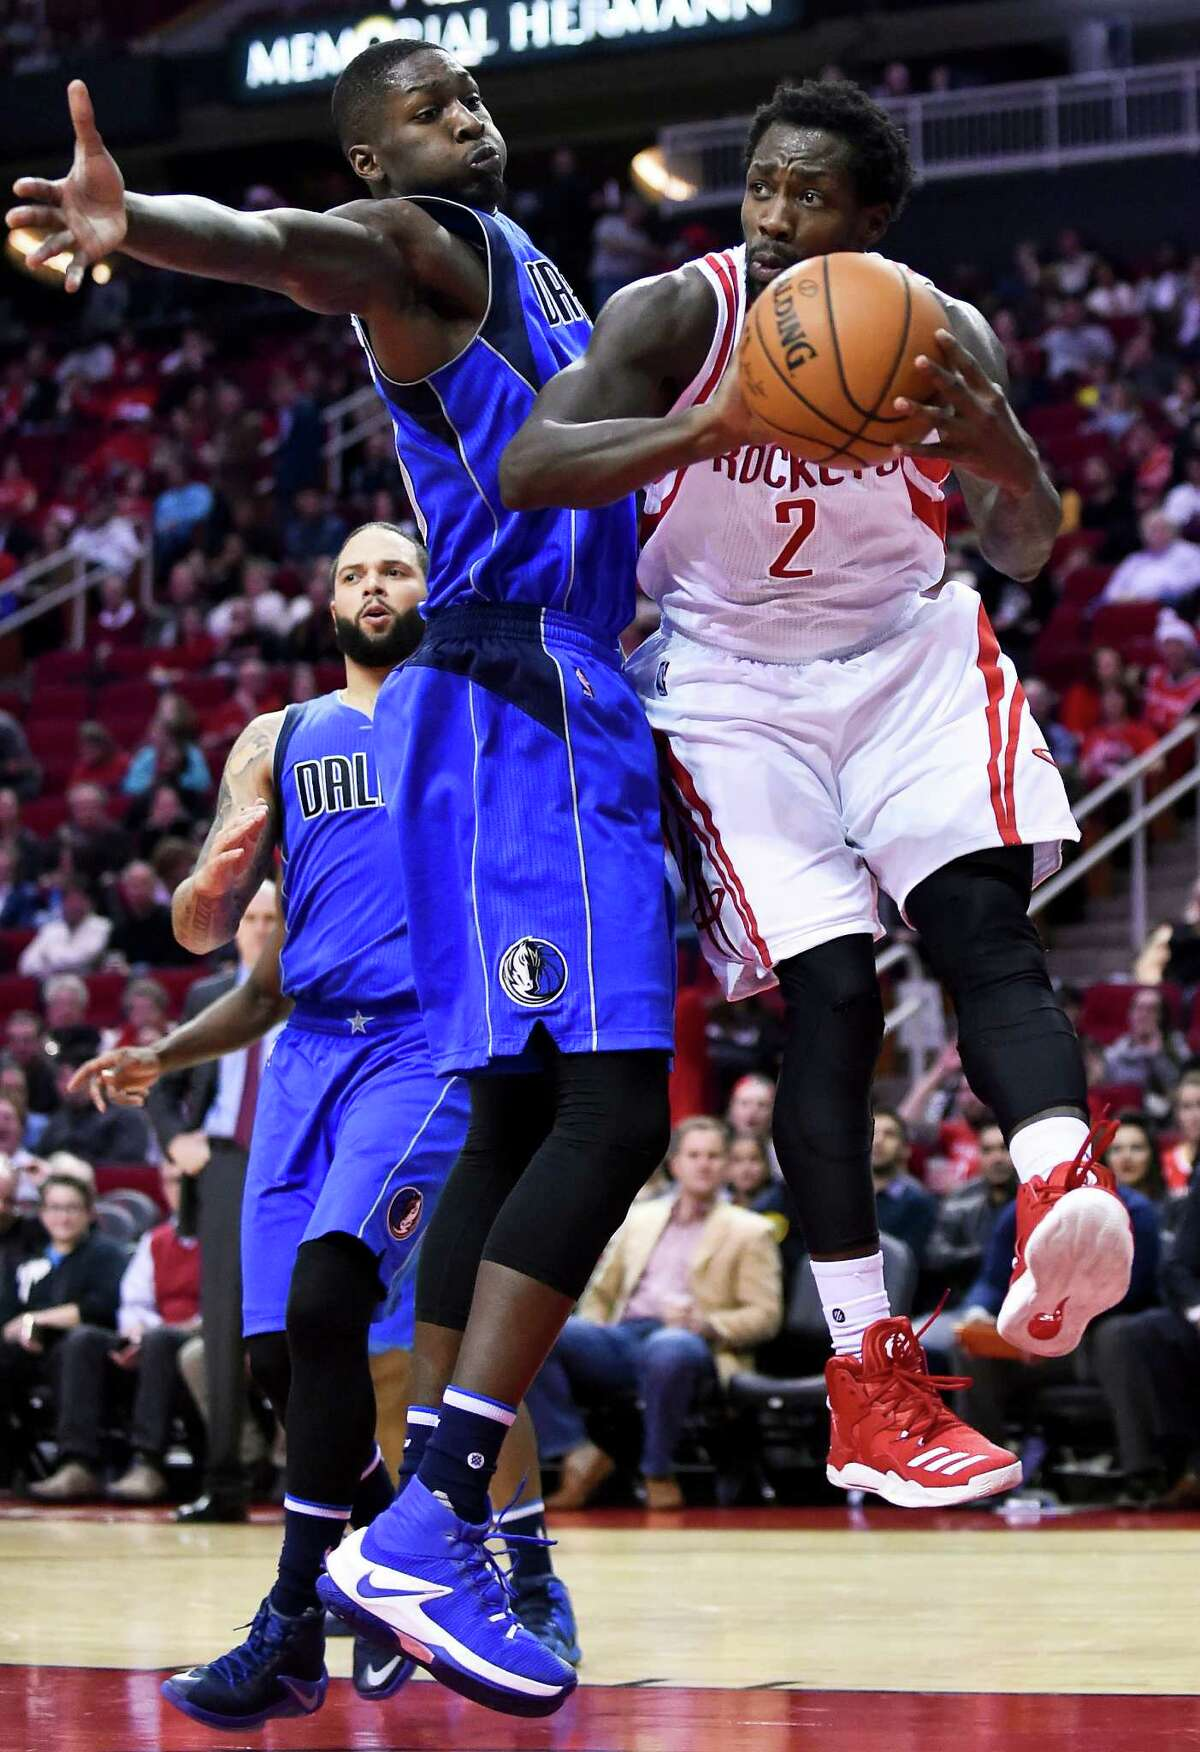 Houston Rockets guard Patrick Beverley (2) looks to pass as Dallas Mavericks forward Dorian Finney-Smith (10) defends during the second half of an NBA basketball game, Saturday, Dec. 10, 2016, in Houston. Houston won 109-87. (AP Photo/Eric Christian Smith)